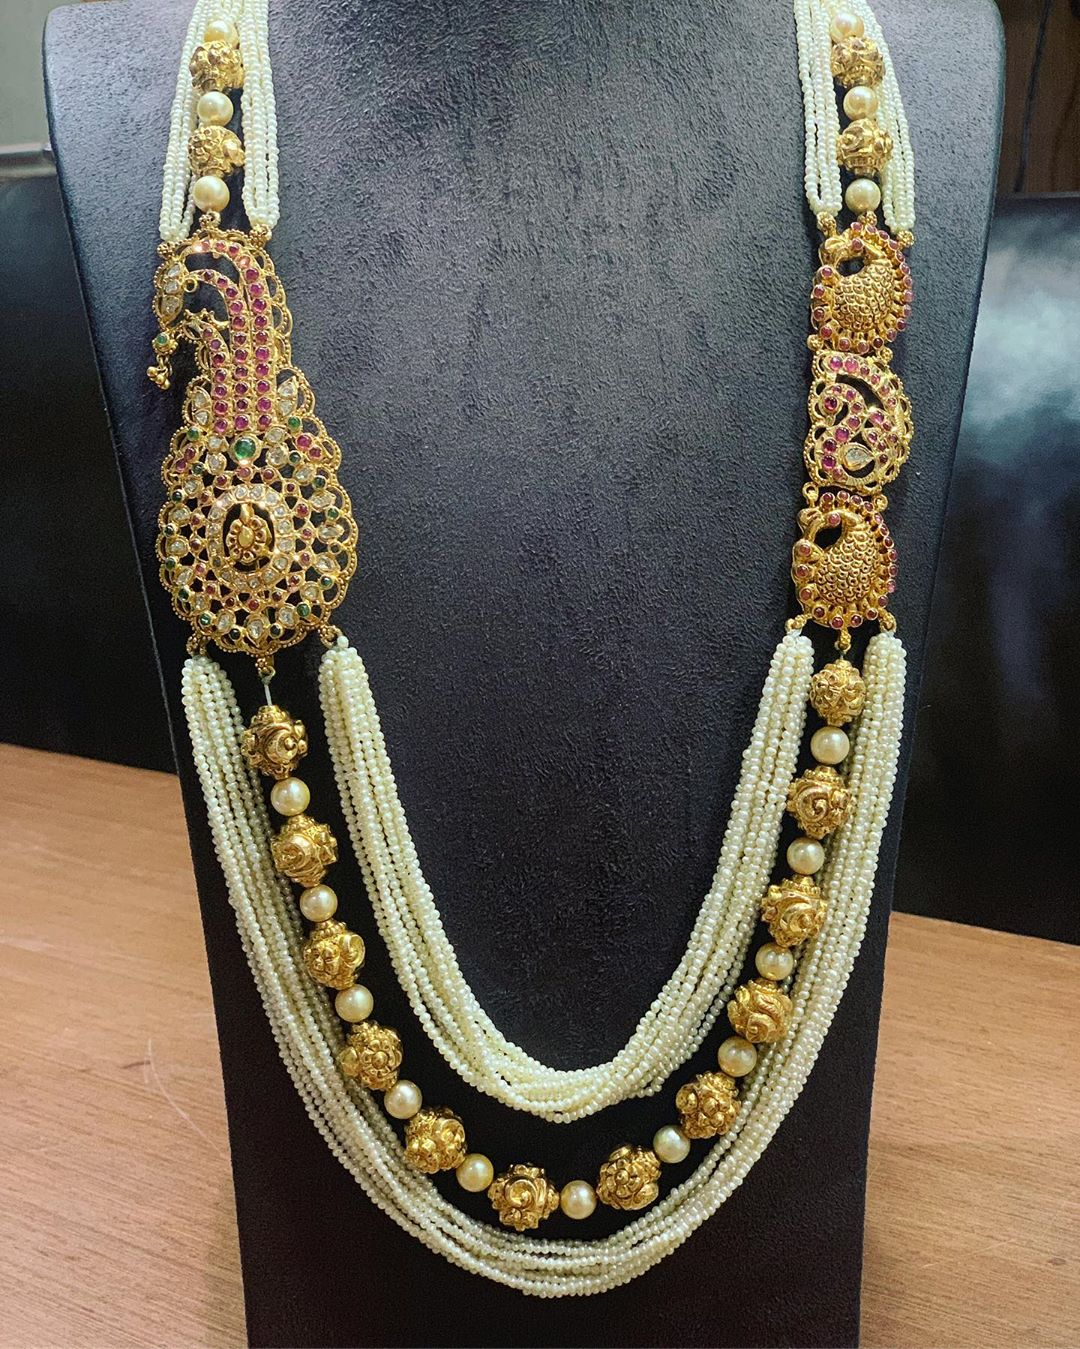 shop-south-indian-gold-haram-designs-online (14)